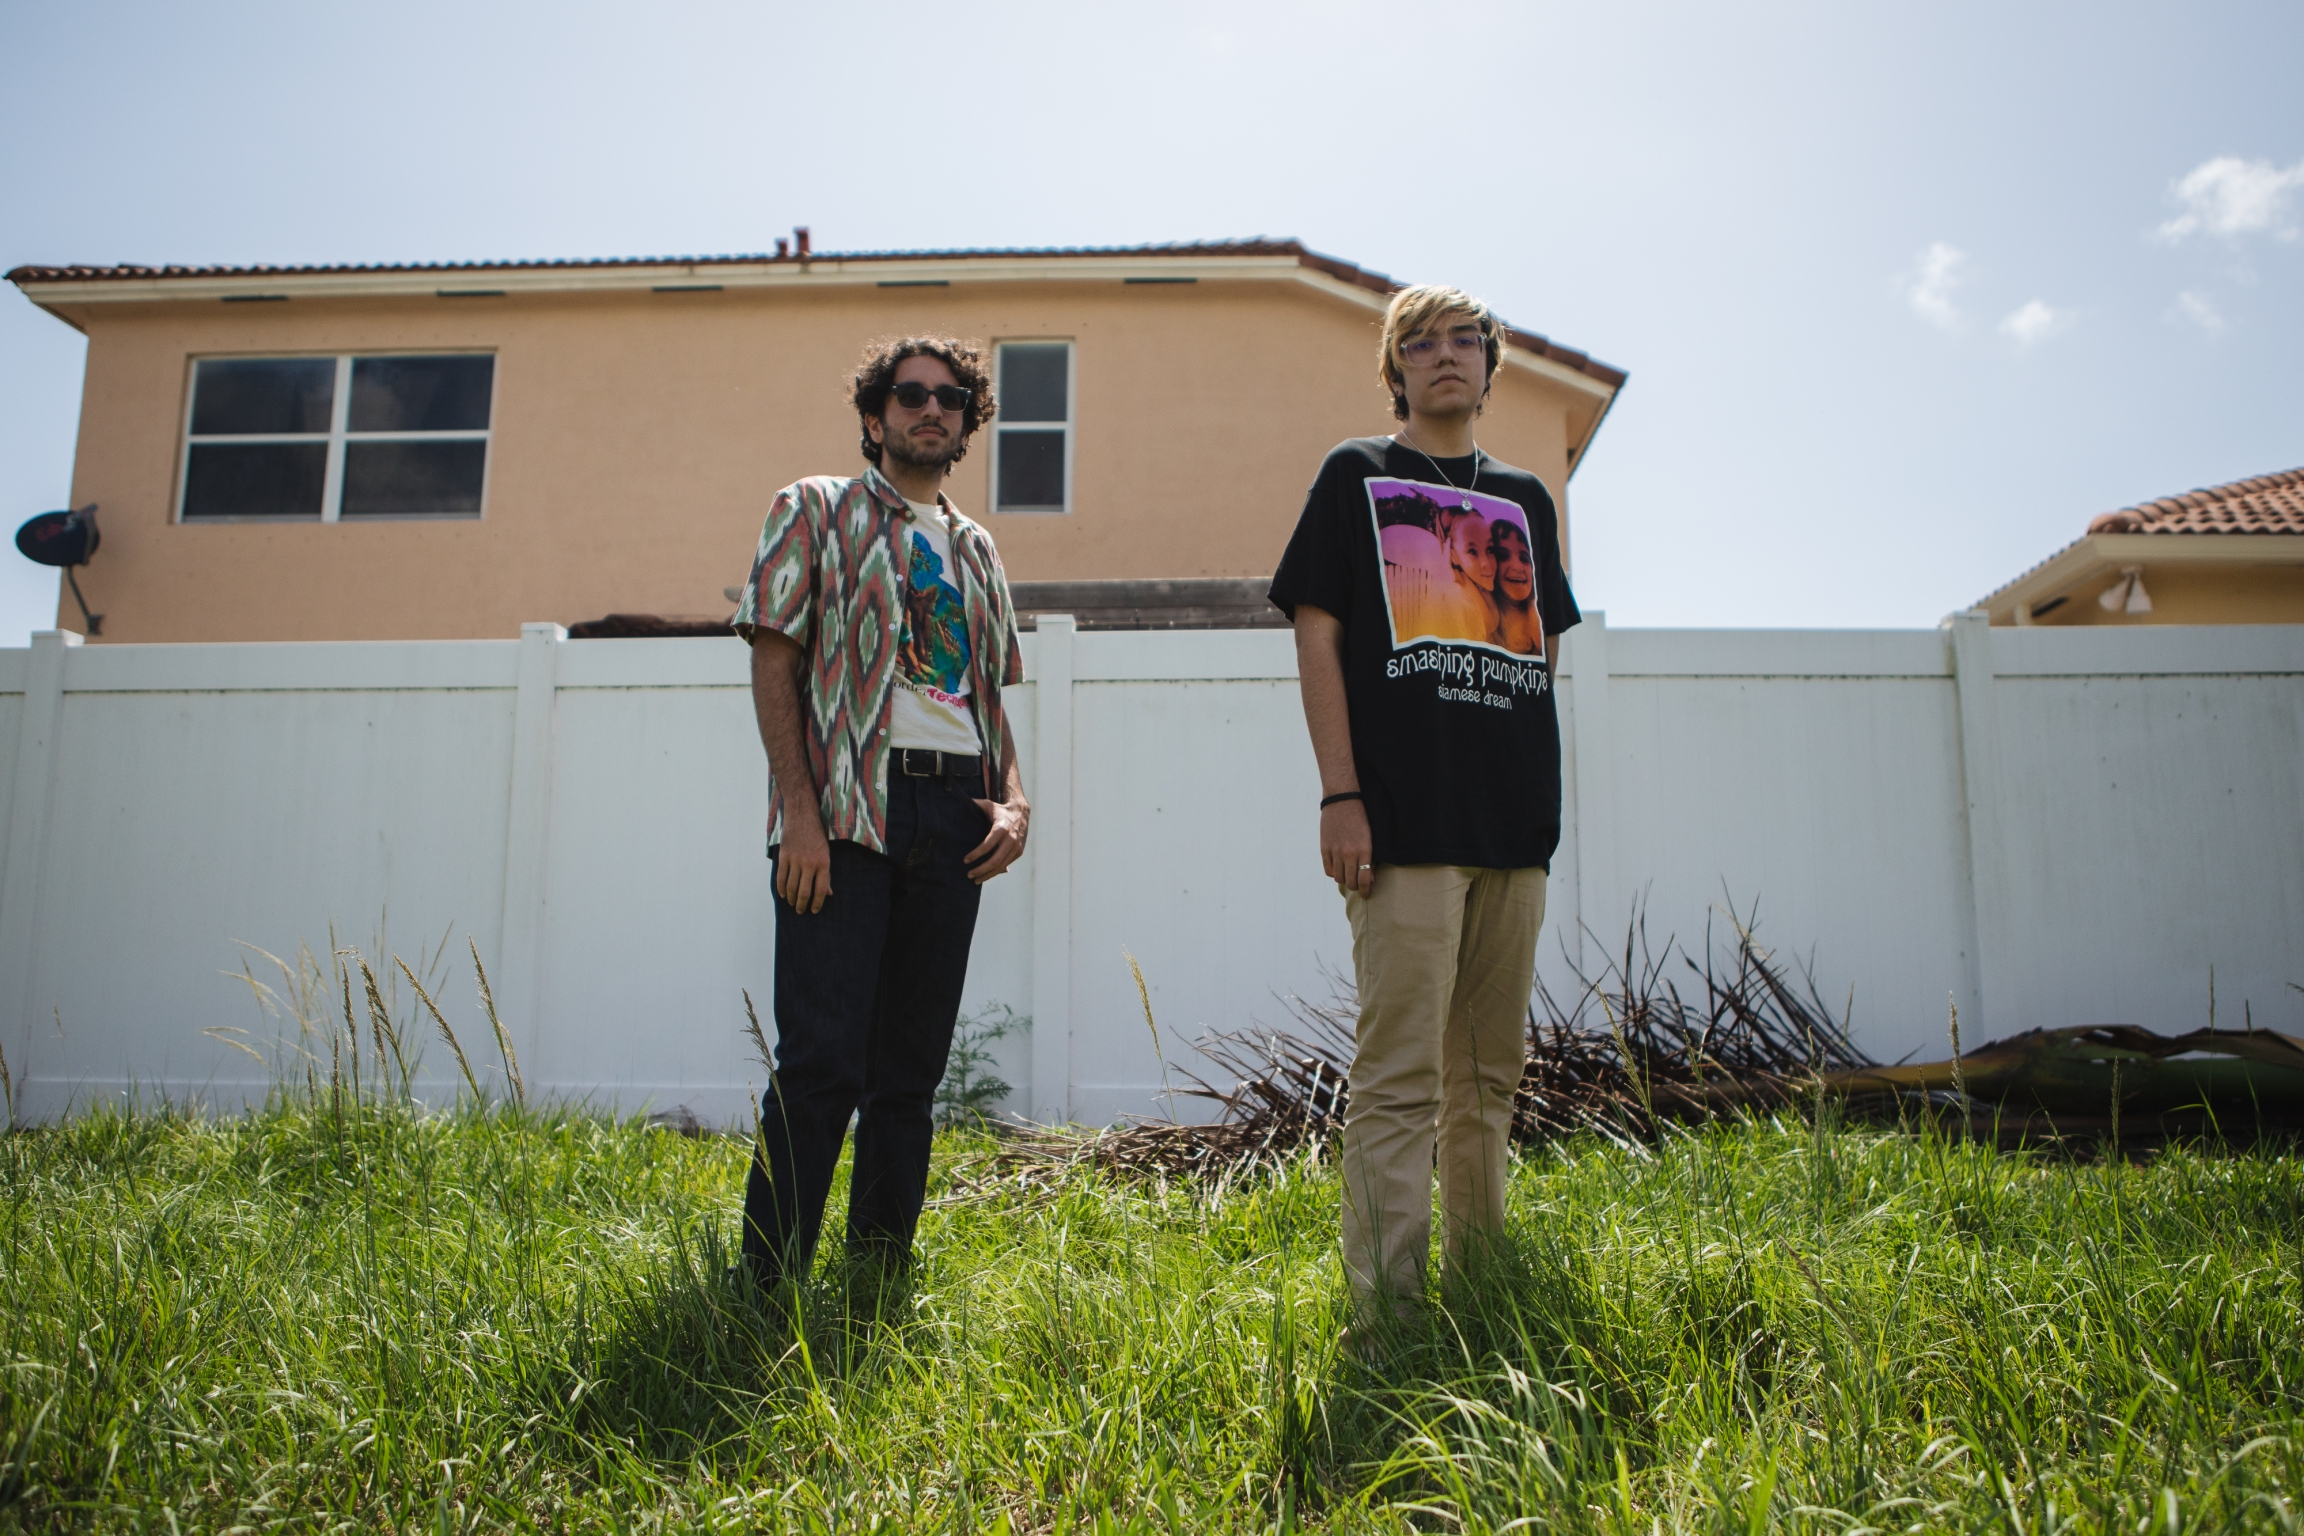 Tristan, left, and Jacob Cuenca in their neighborhood in Homestead, Florida, on May 21, 2020.